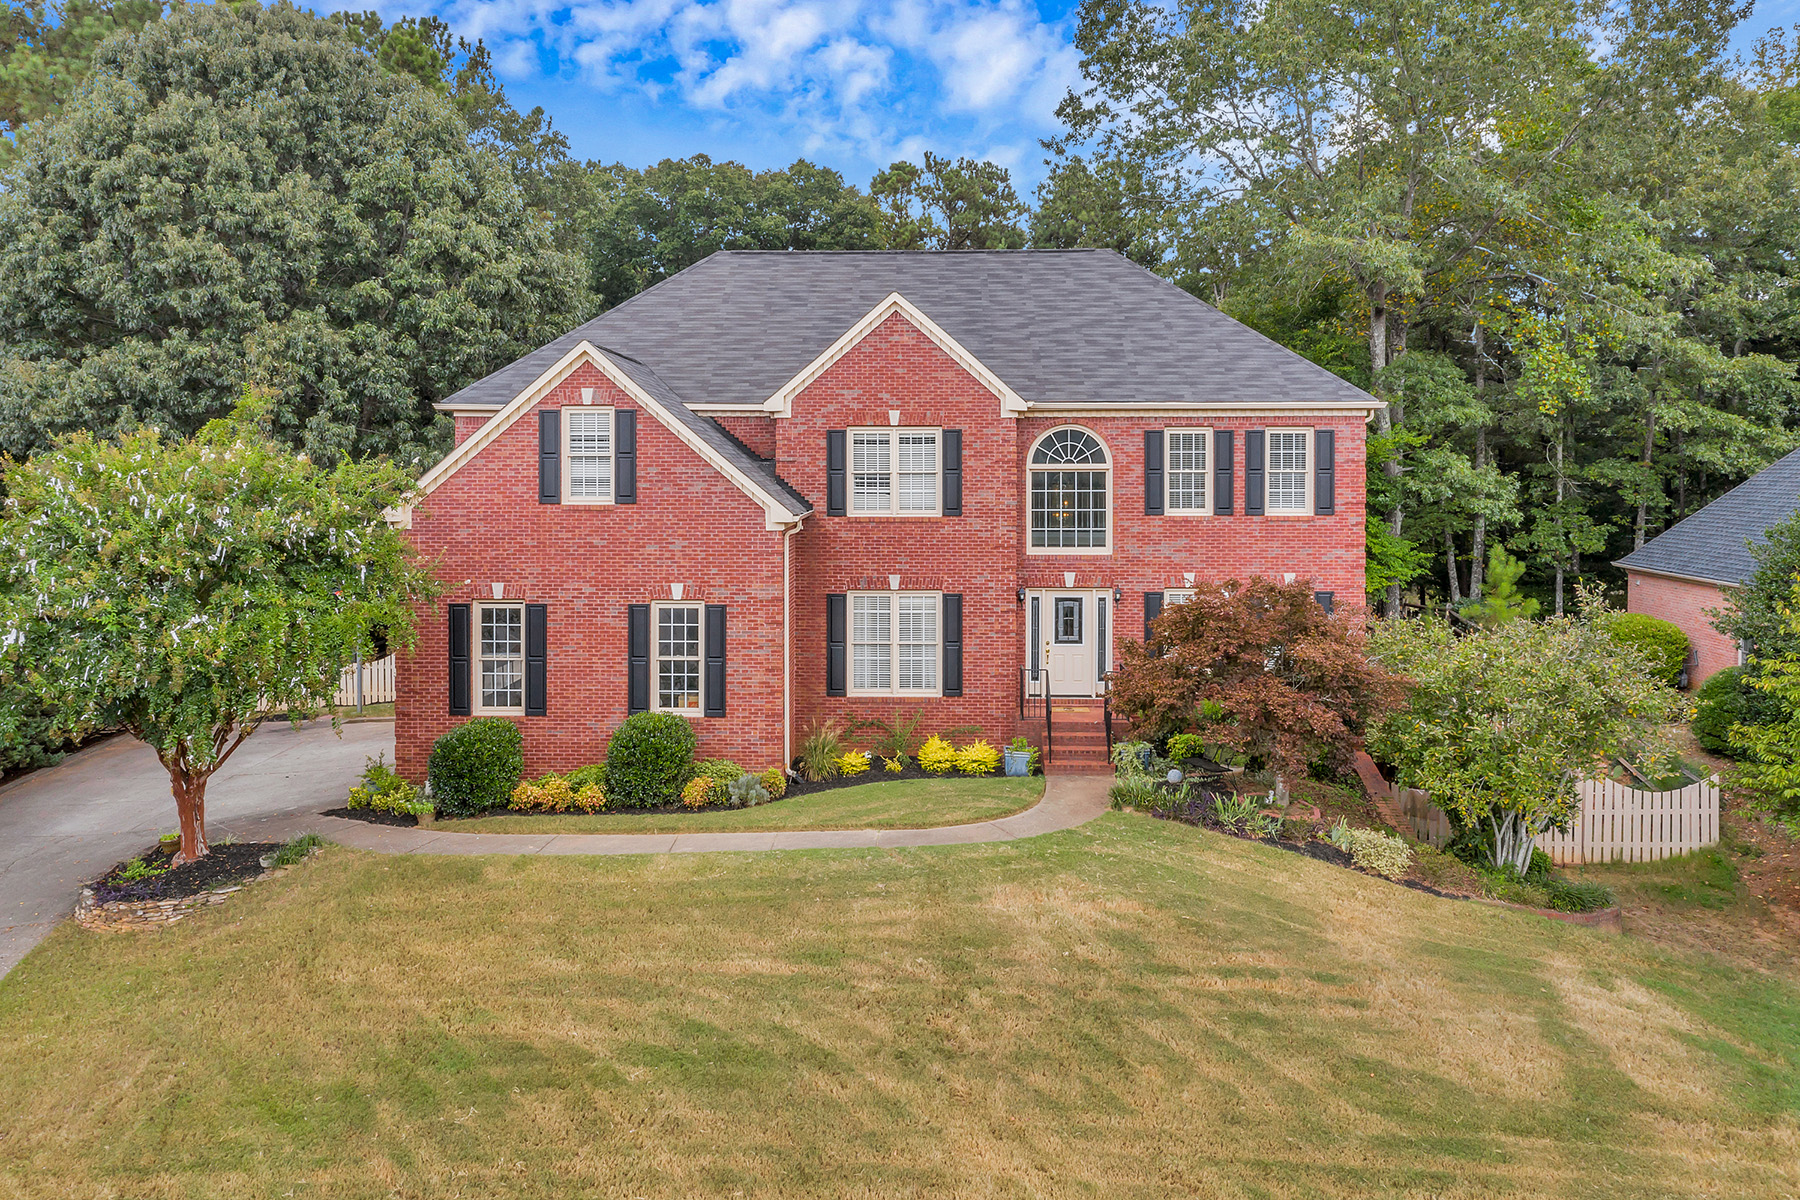 Single Family Homes のために 売買 アット Stunning And Pristine In Desirable Roswell 430 Laurian View Ct, Roswell, ジョージア 30075 アメリカ